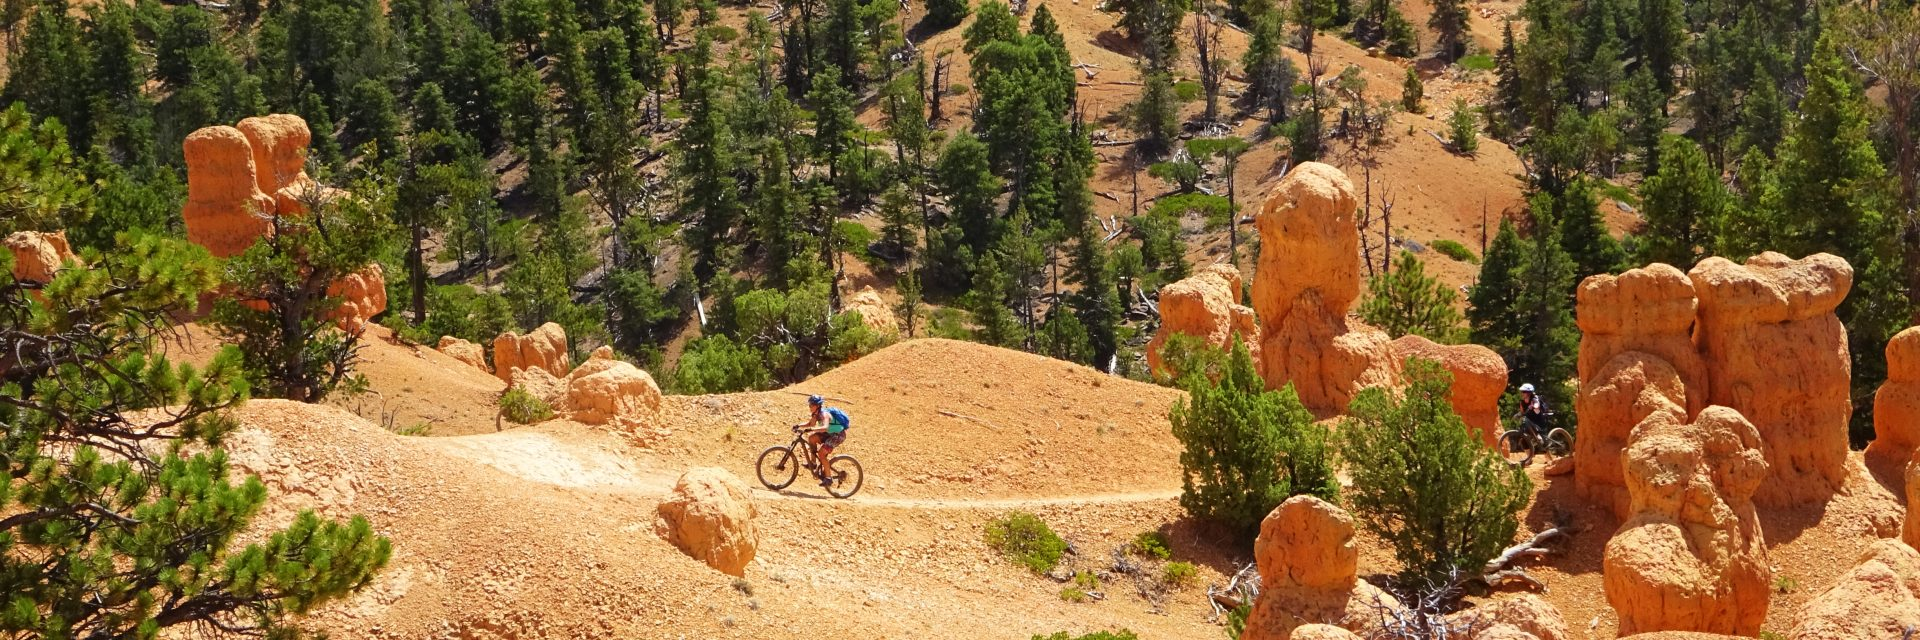 Bryce to Zion tours include a final day on Thunder Mountain Trail in Red Canyon on the border of Bryce National Park